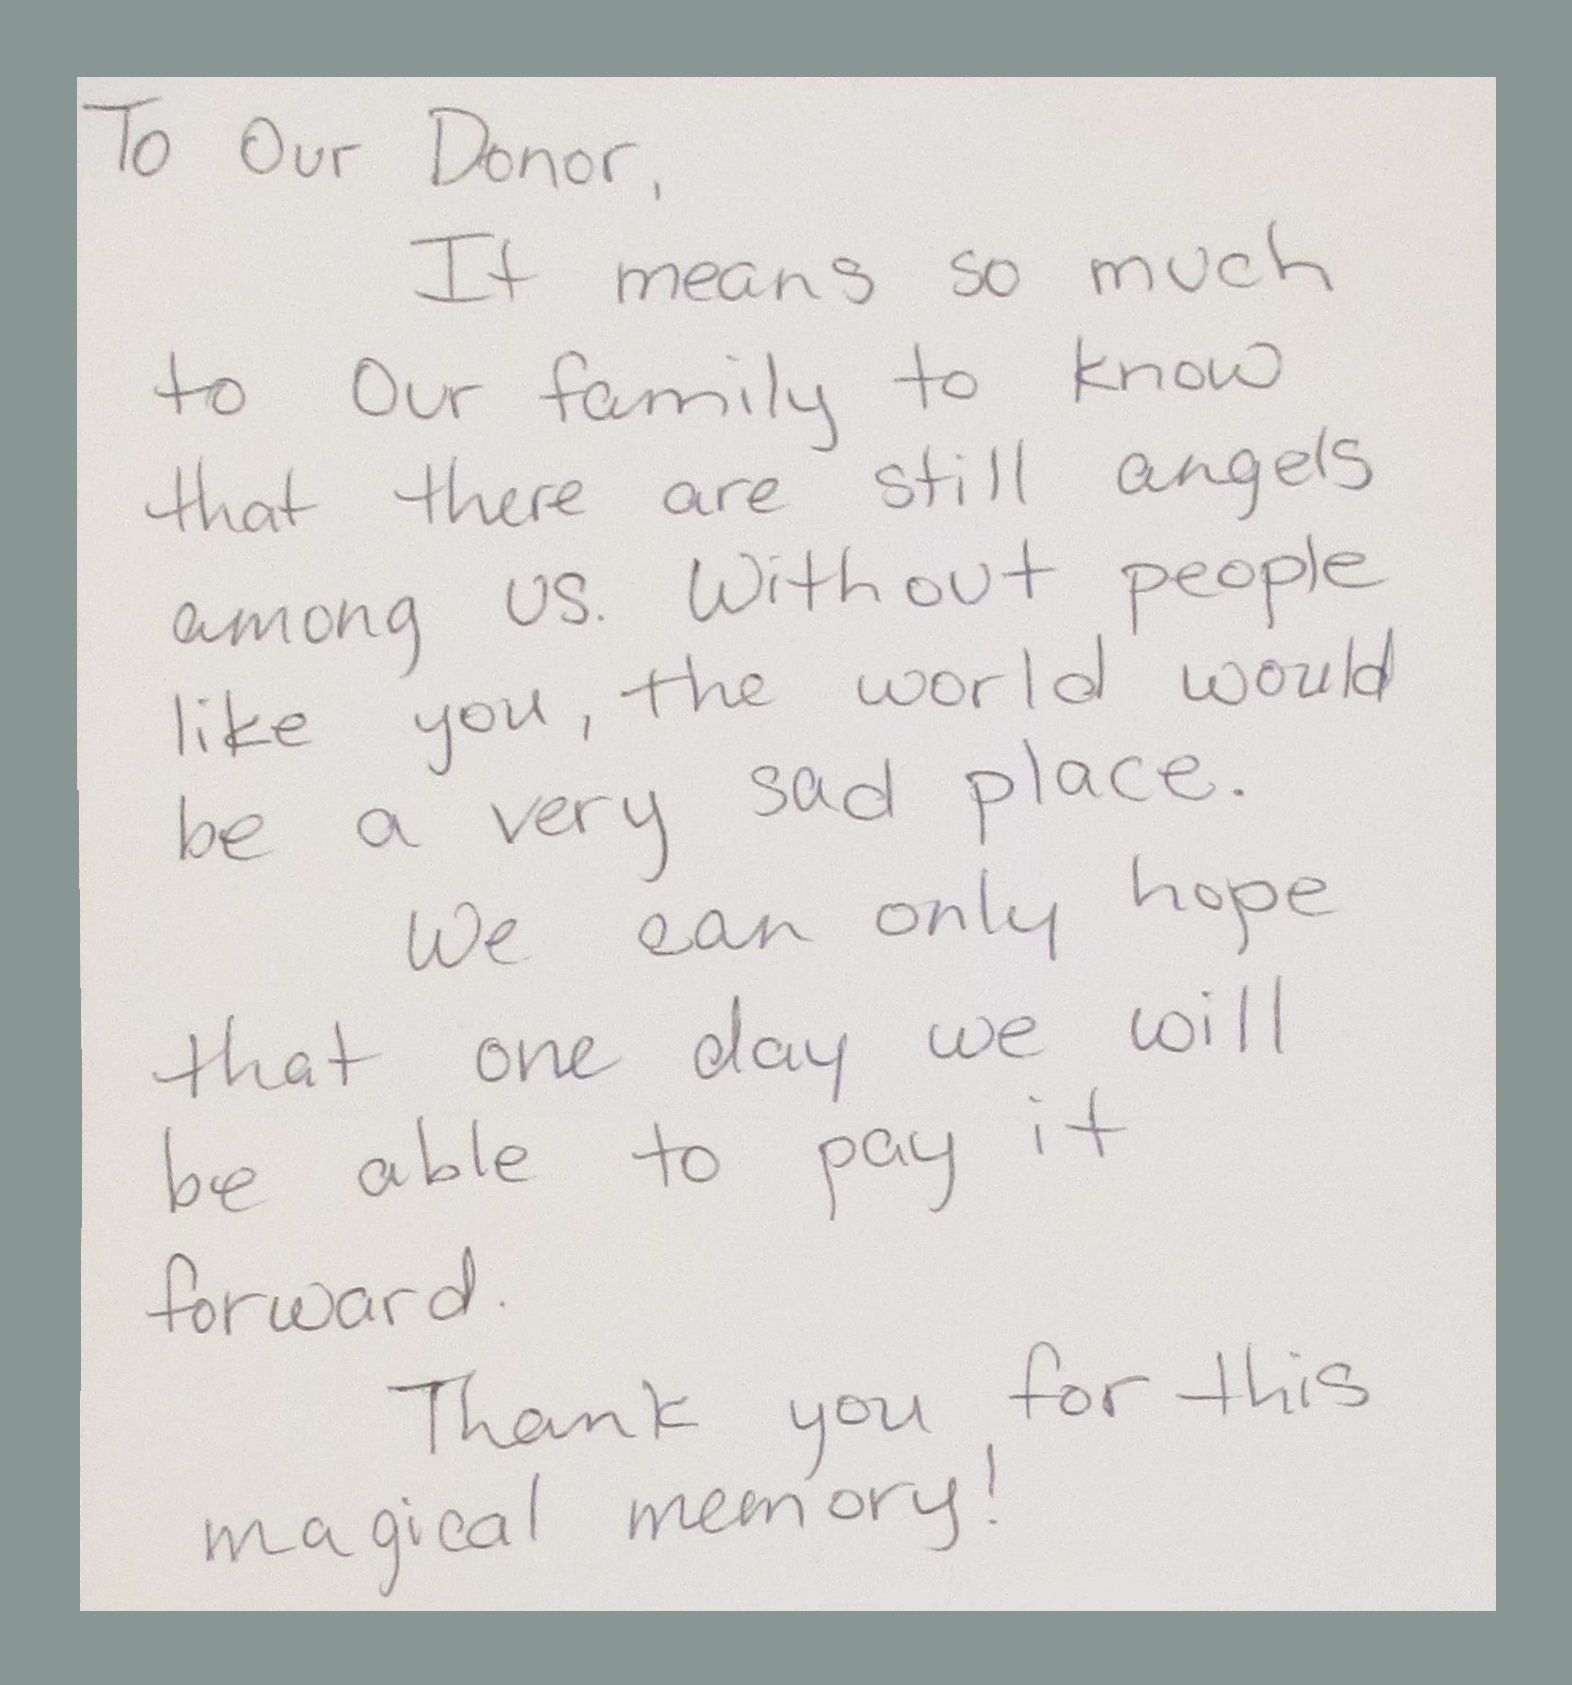 CPCD adopted family thank you letter